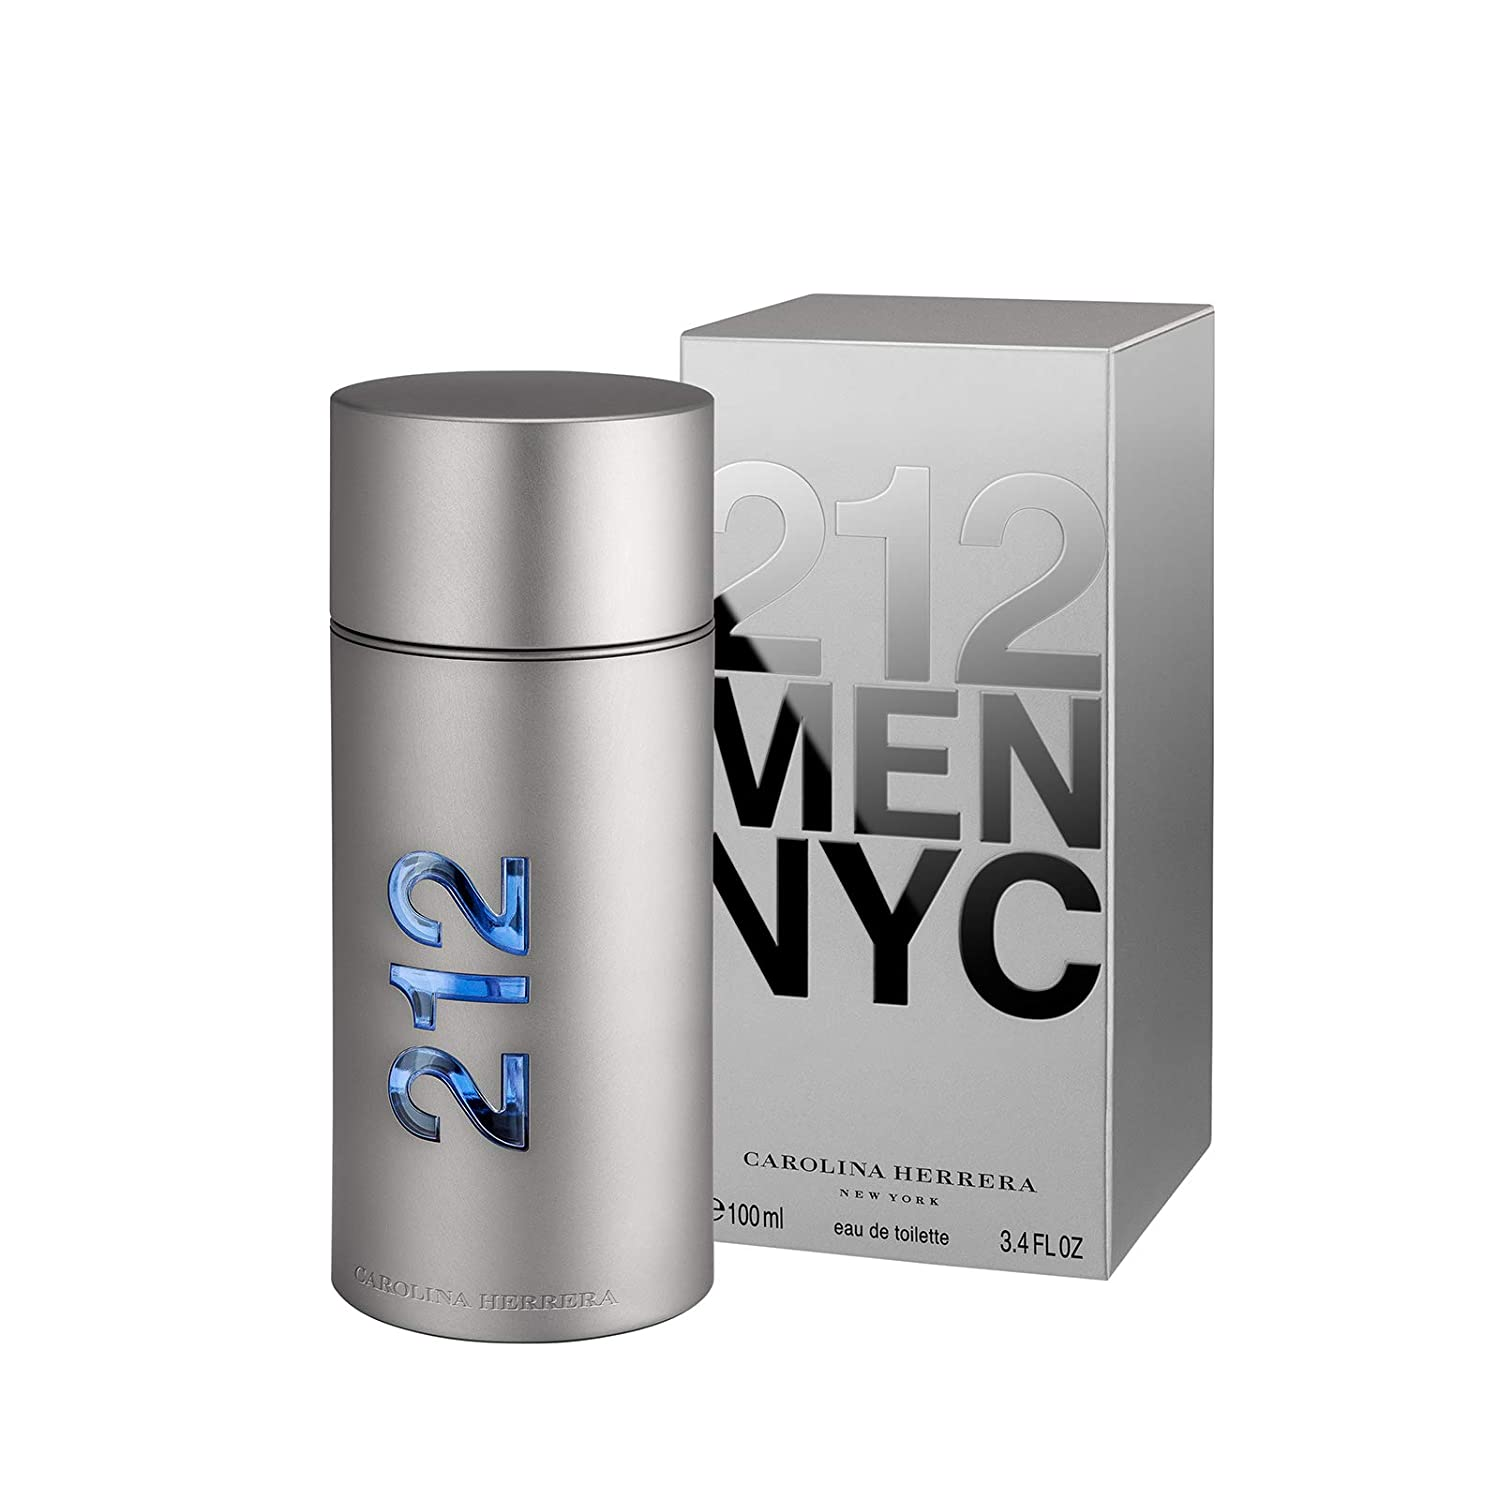 Carolina Herrera 212 For Men Eau De Toilette 100ml Perfumes For Men ratans